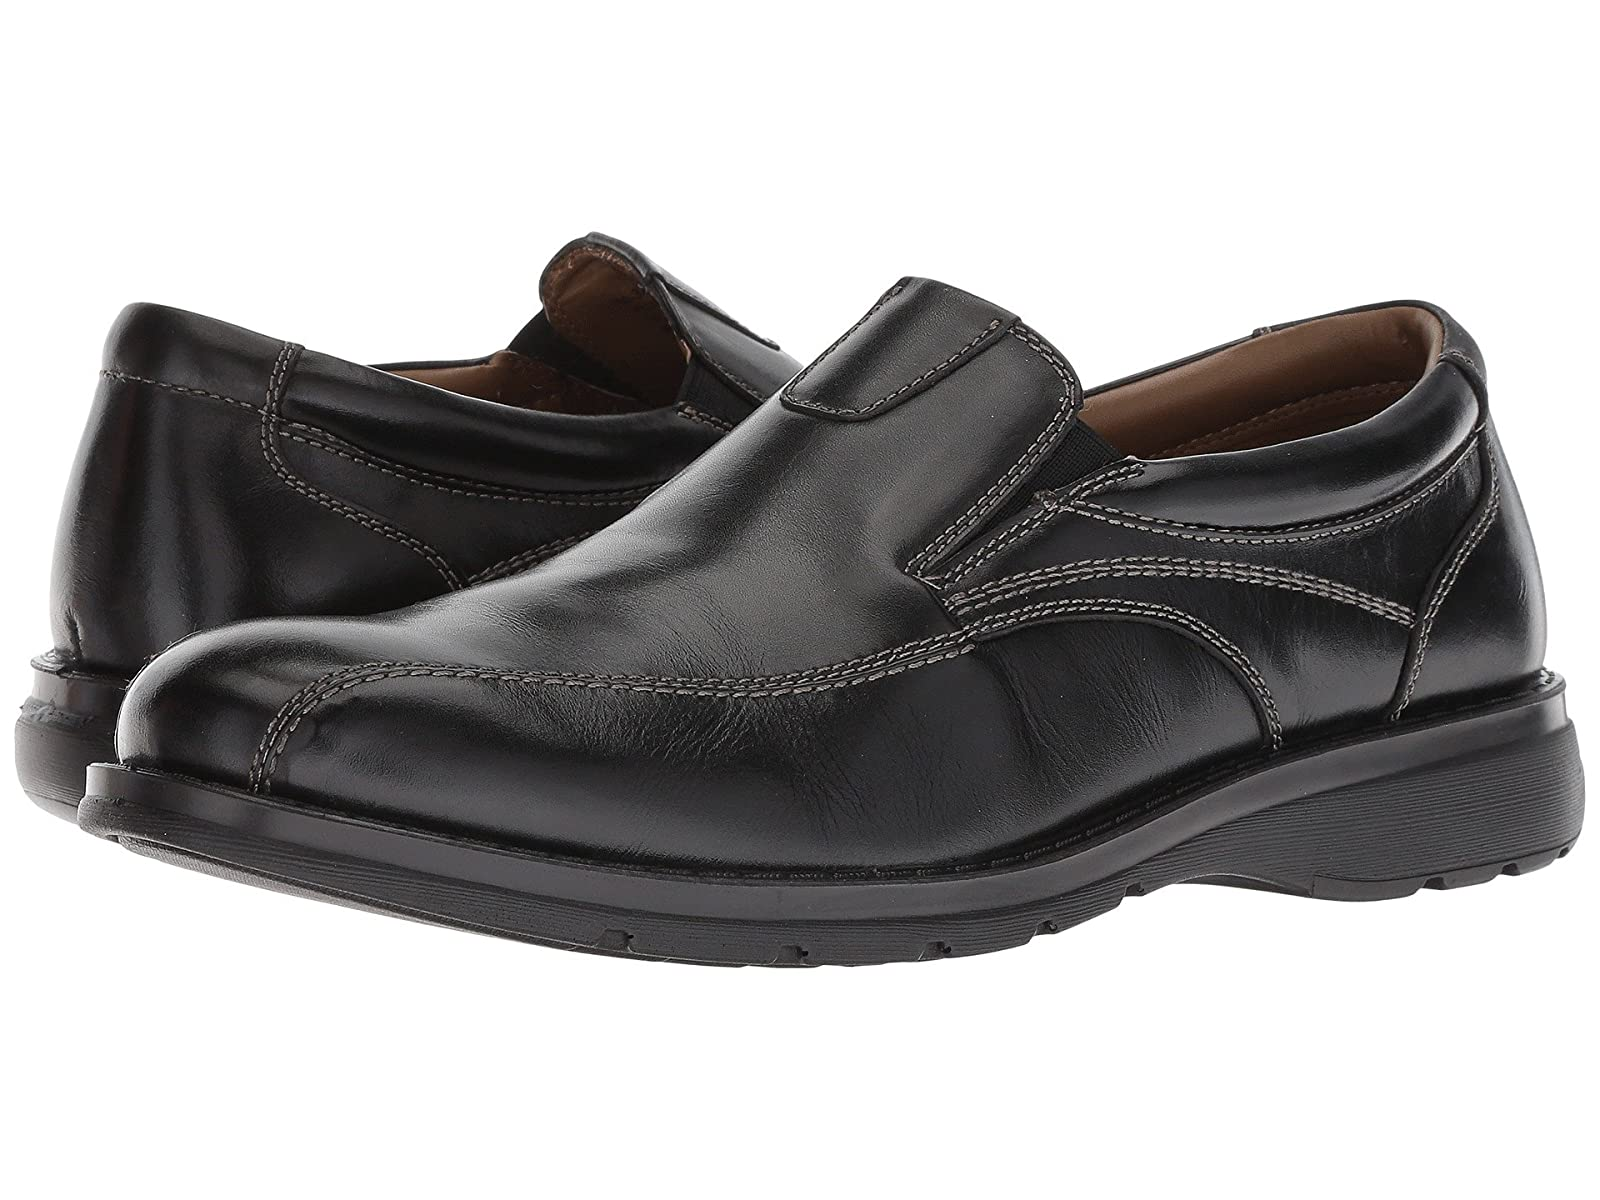 Dockers Agent 2.0Atmospheric grades have affordable shoes